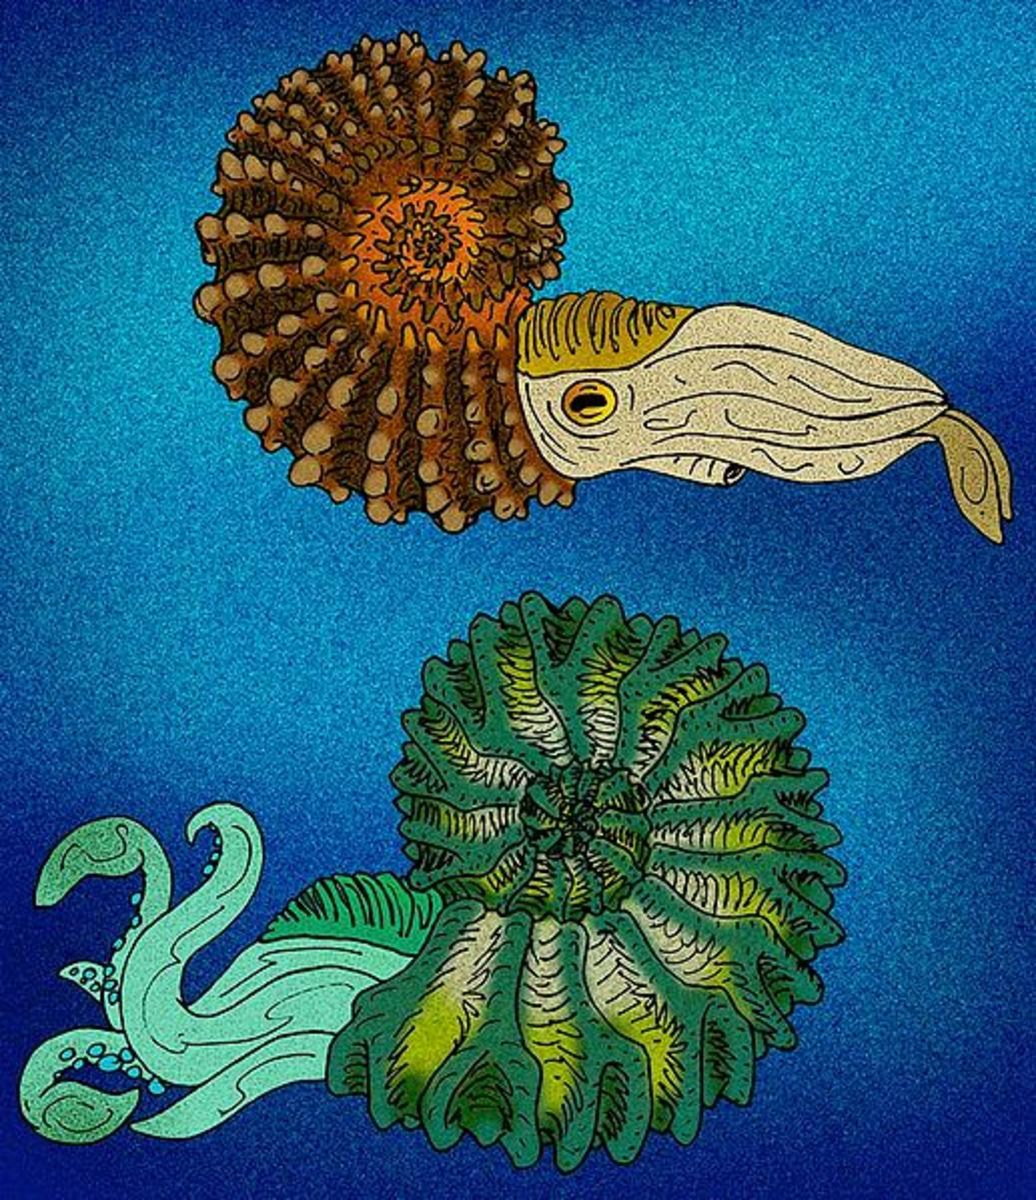 Atist's rendition of an ammonite (although speculations as to what the soft bodied parts looked like is somewhat the job of educated guesses.)